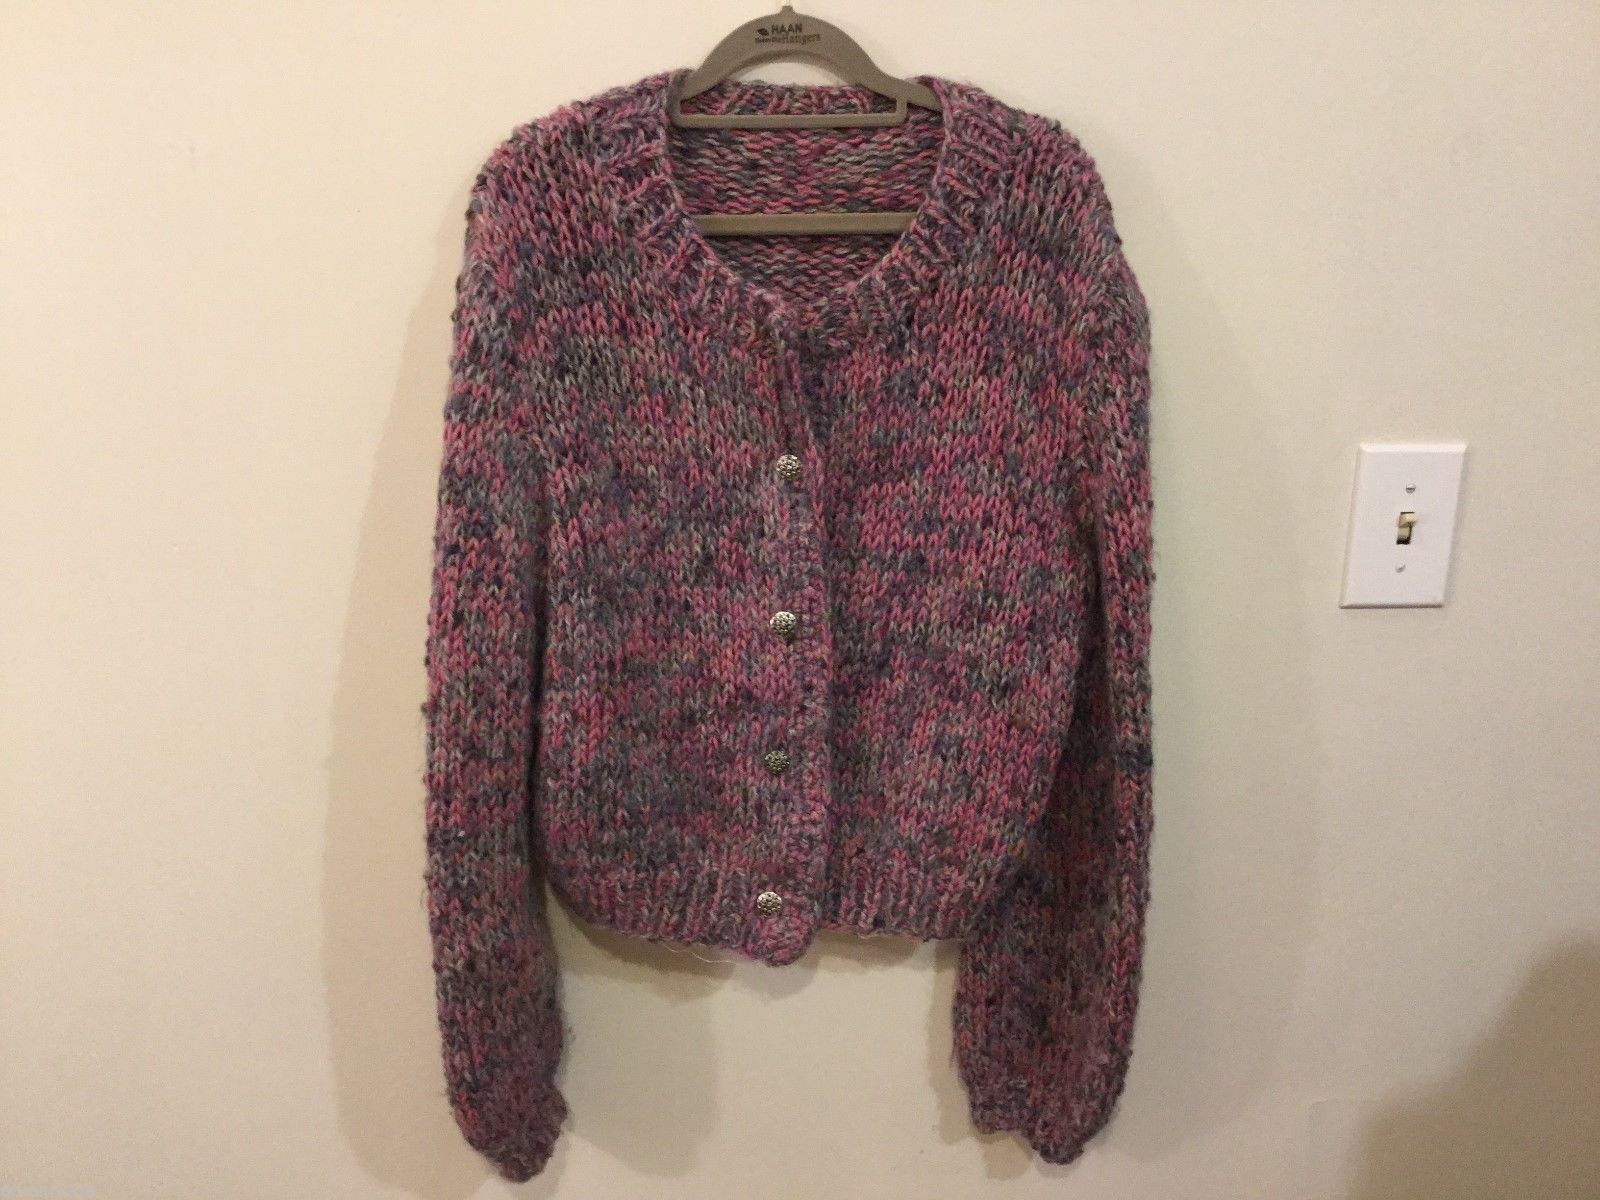 Womans Multicolored Cropped Knit Jacket, Size Unknown, See Measurements